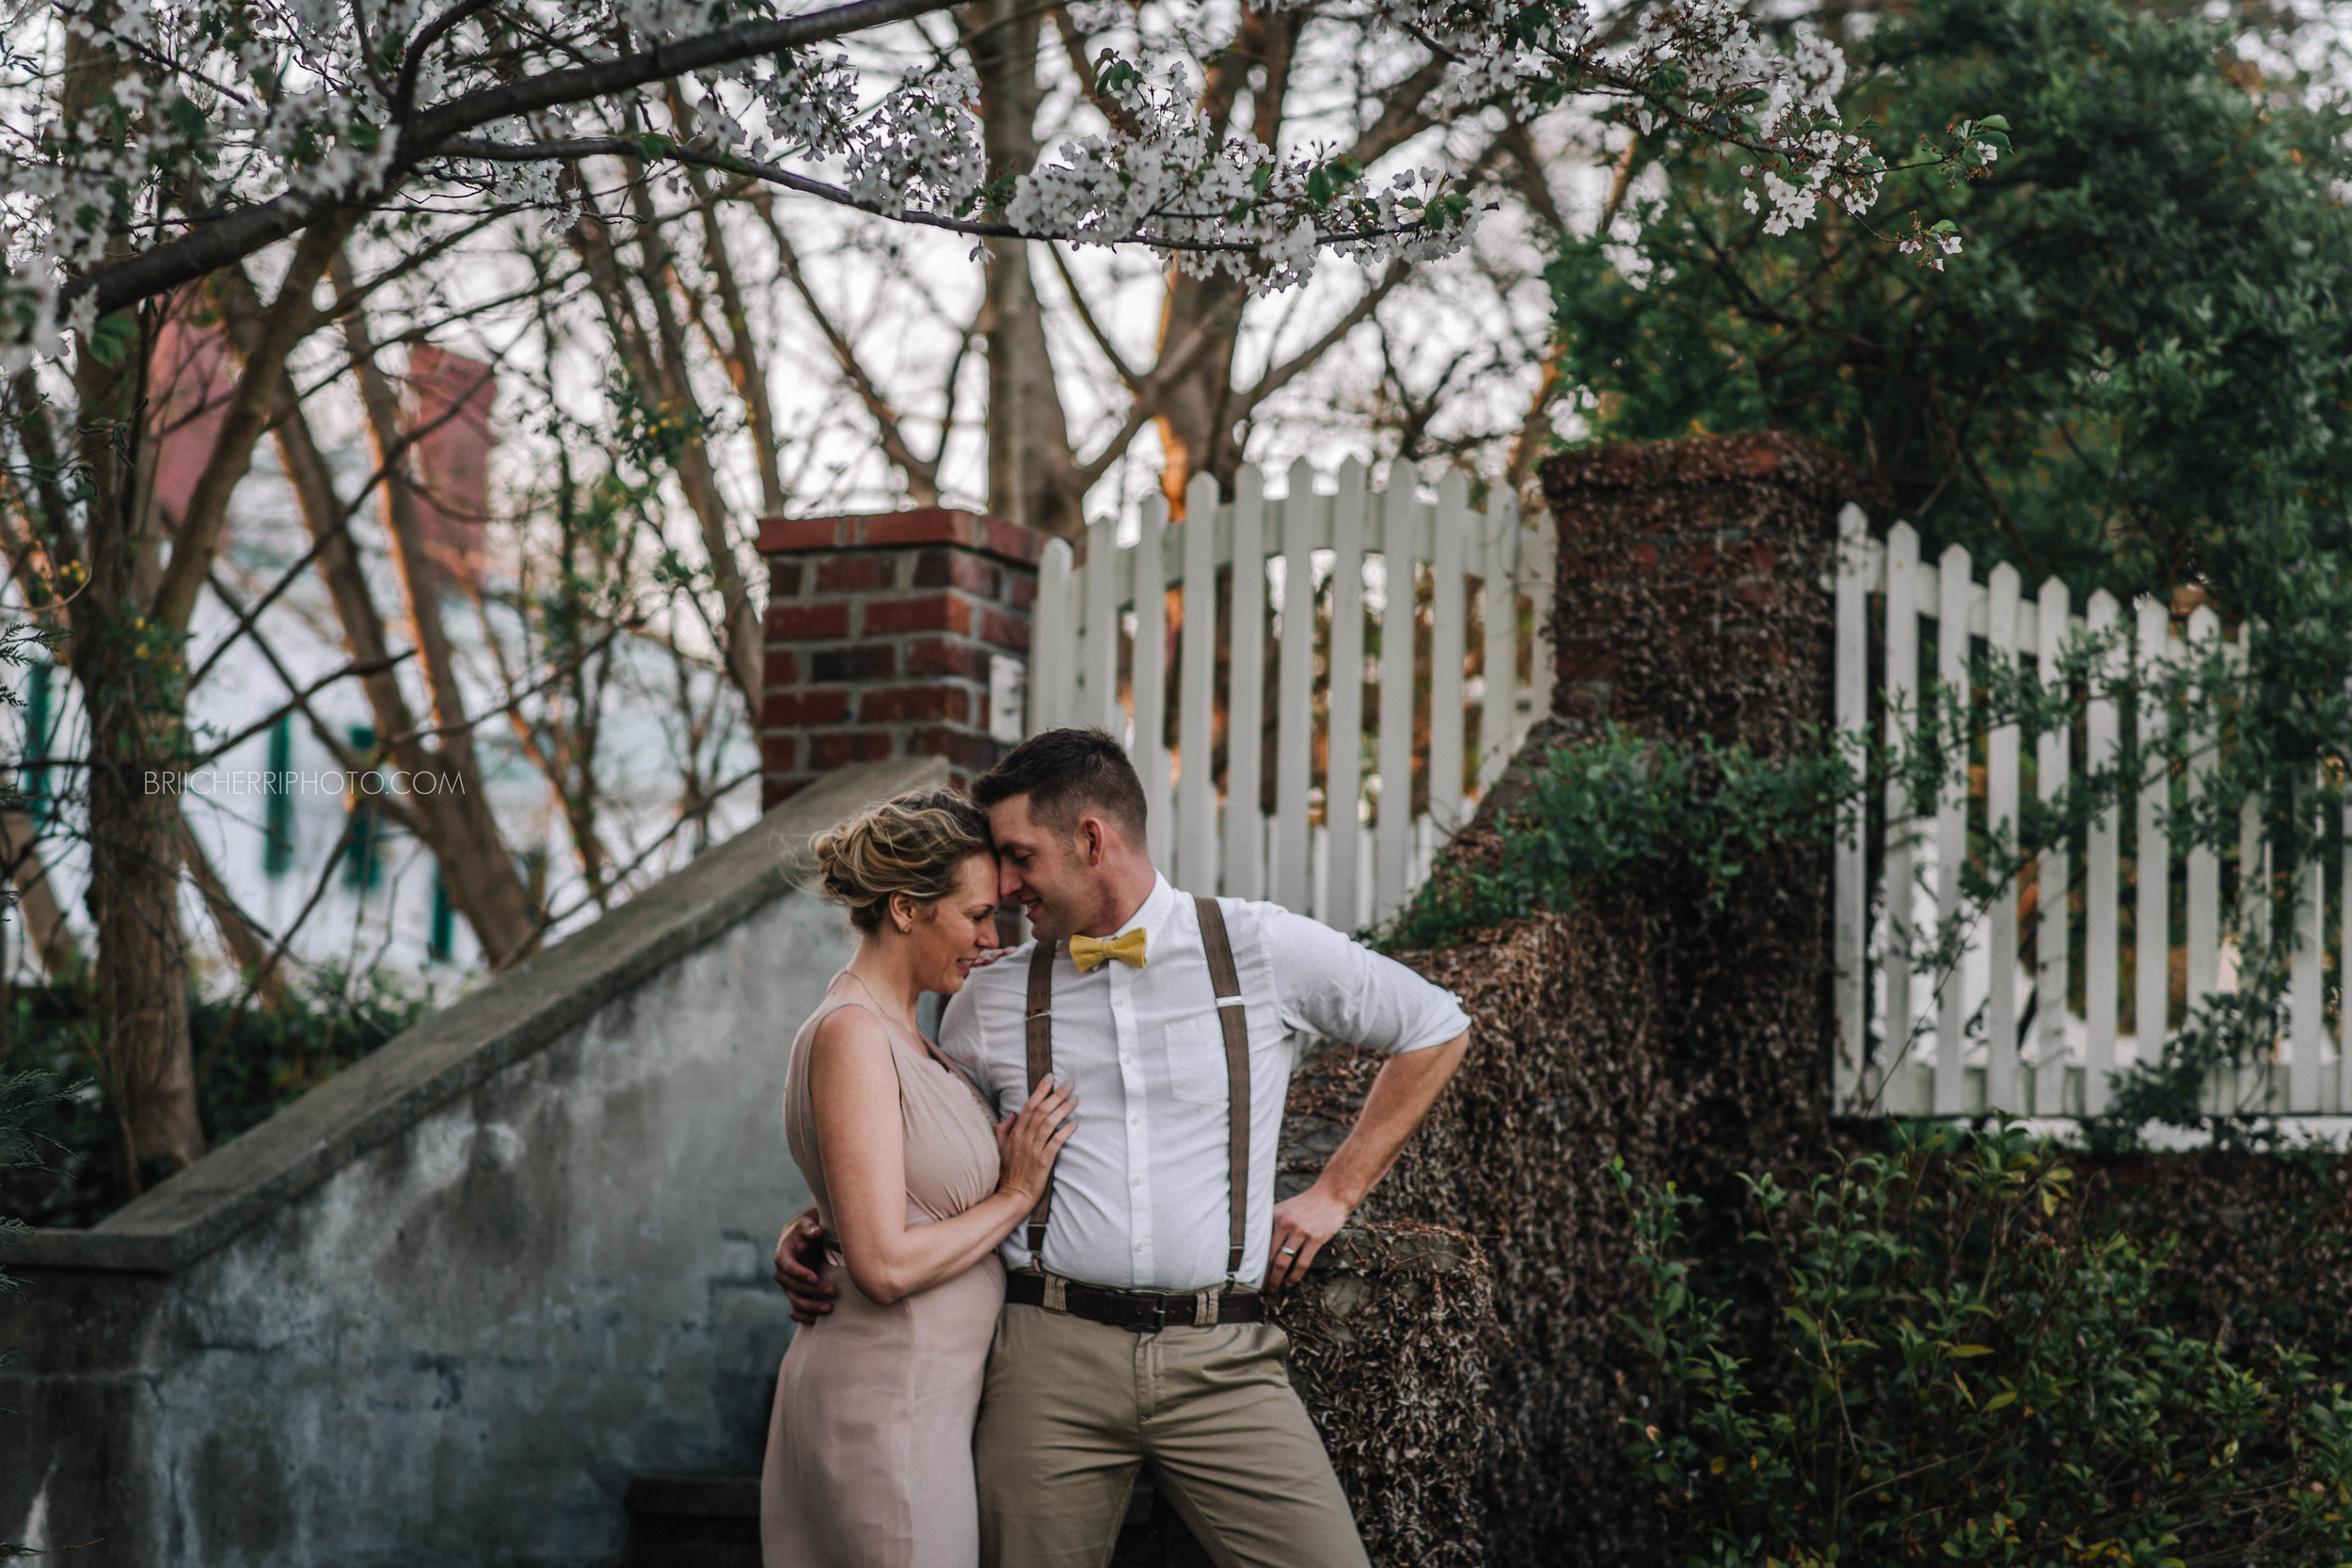 North Carolina Wedding Elopement & engagement photographer for Boone Edenton Asheville & Greenville. Call 6072879074 to book your love story now!